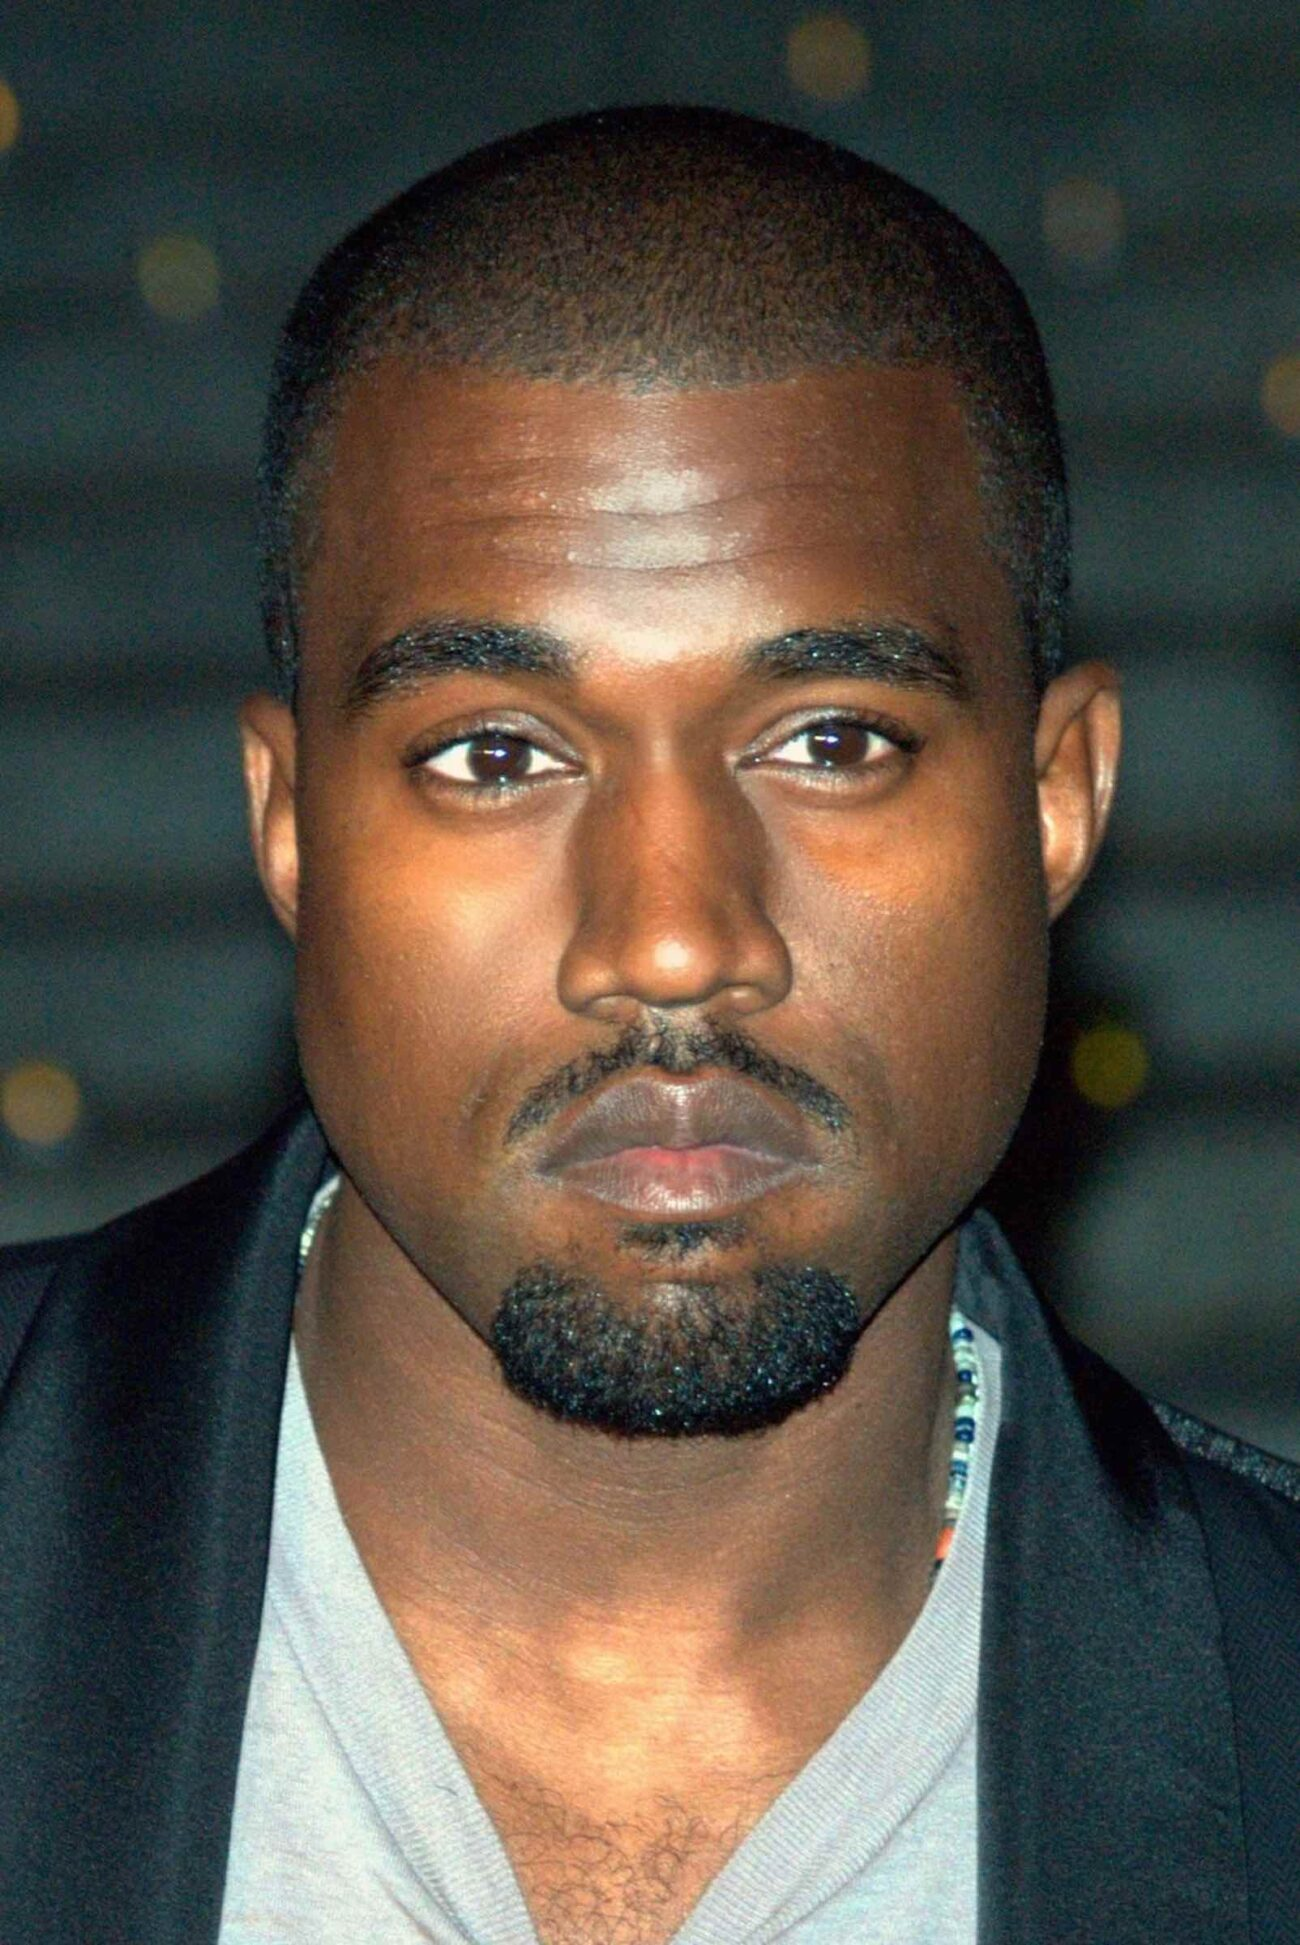 Kanye West has legally filed to change his name to Ye yesterday and Twitter is confused. Get ready to retweet as we dive into news on Kanye West.